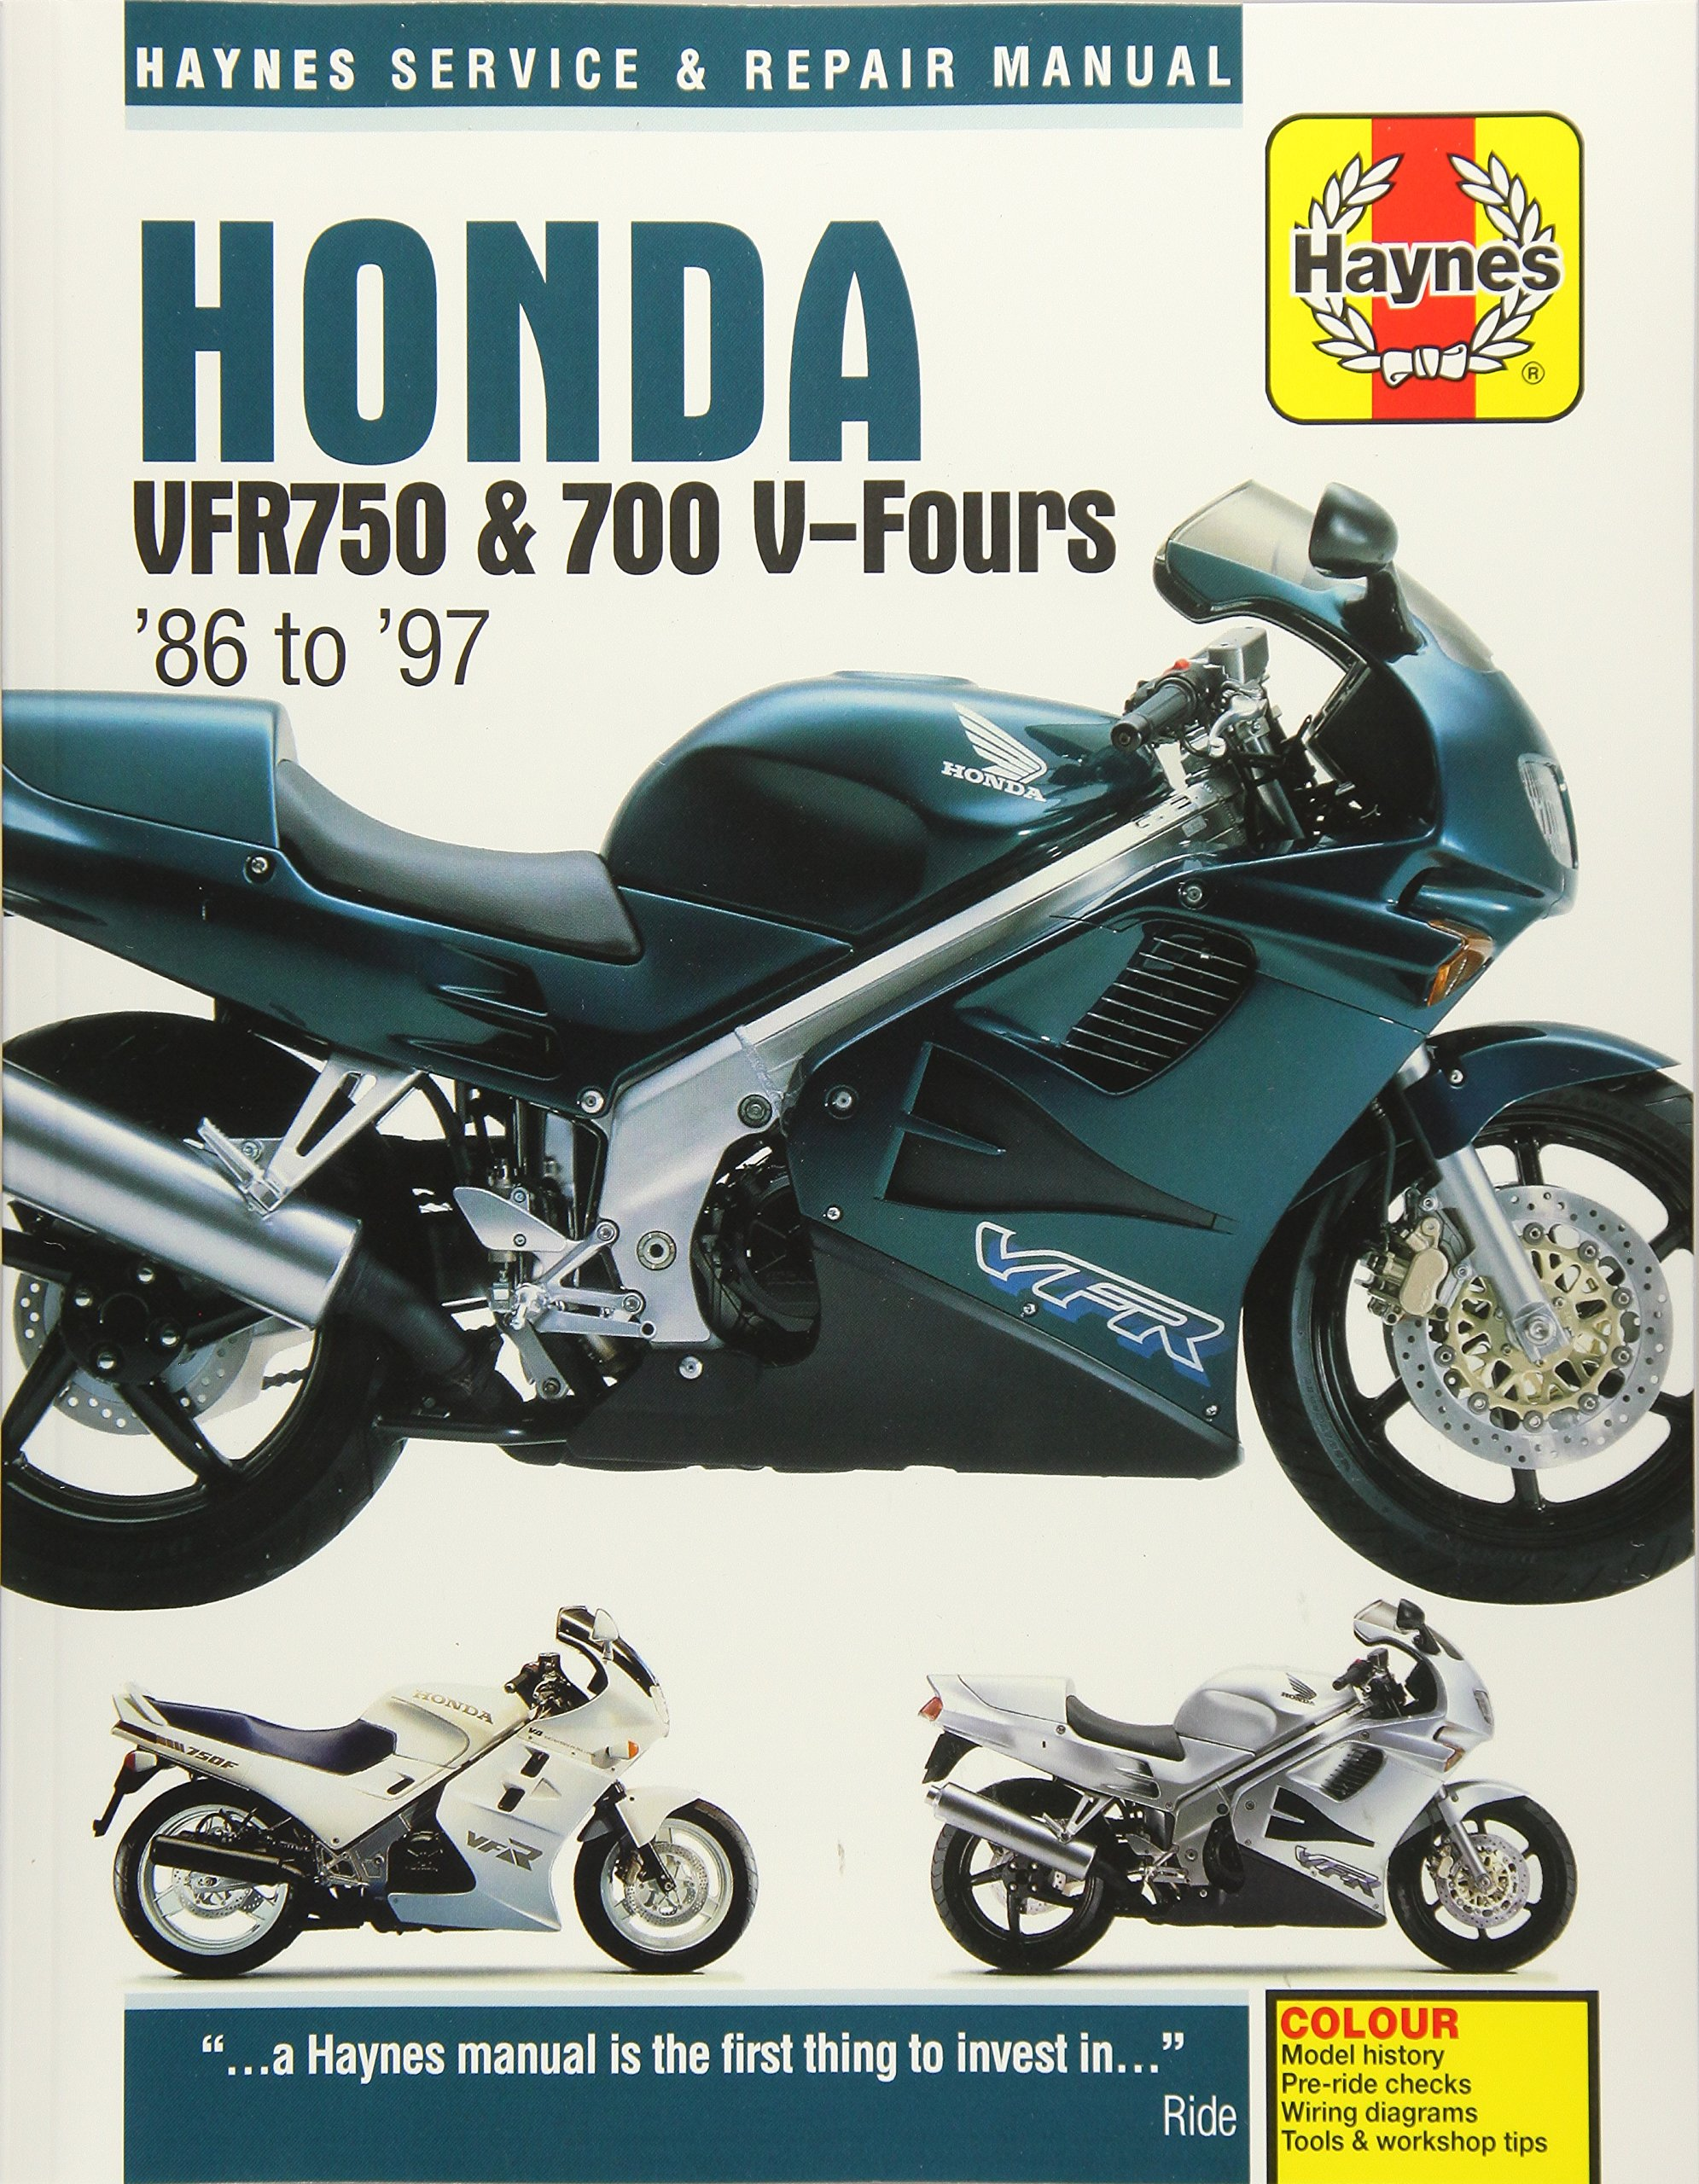 Honda VFR750 & 700 V-Fours 1986 Thru 1997 (Haynes Service & Repair Manual):  John Haynes: 9781785210396: Amazon.com: Books